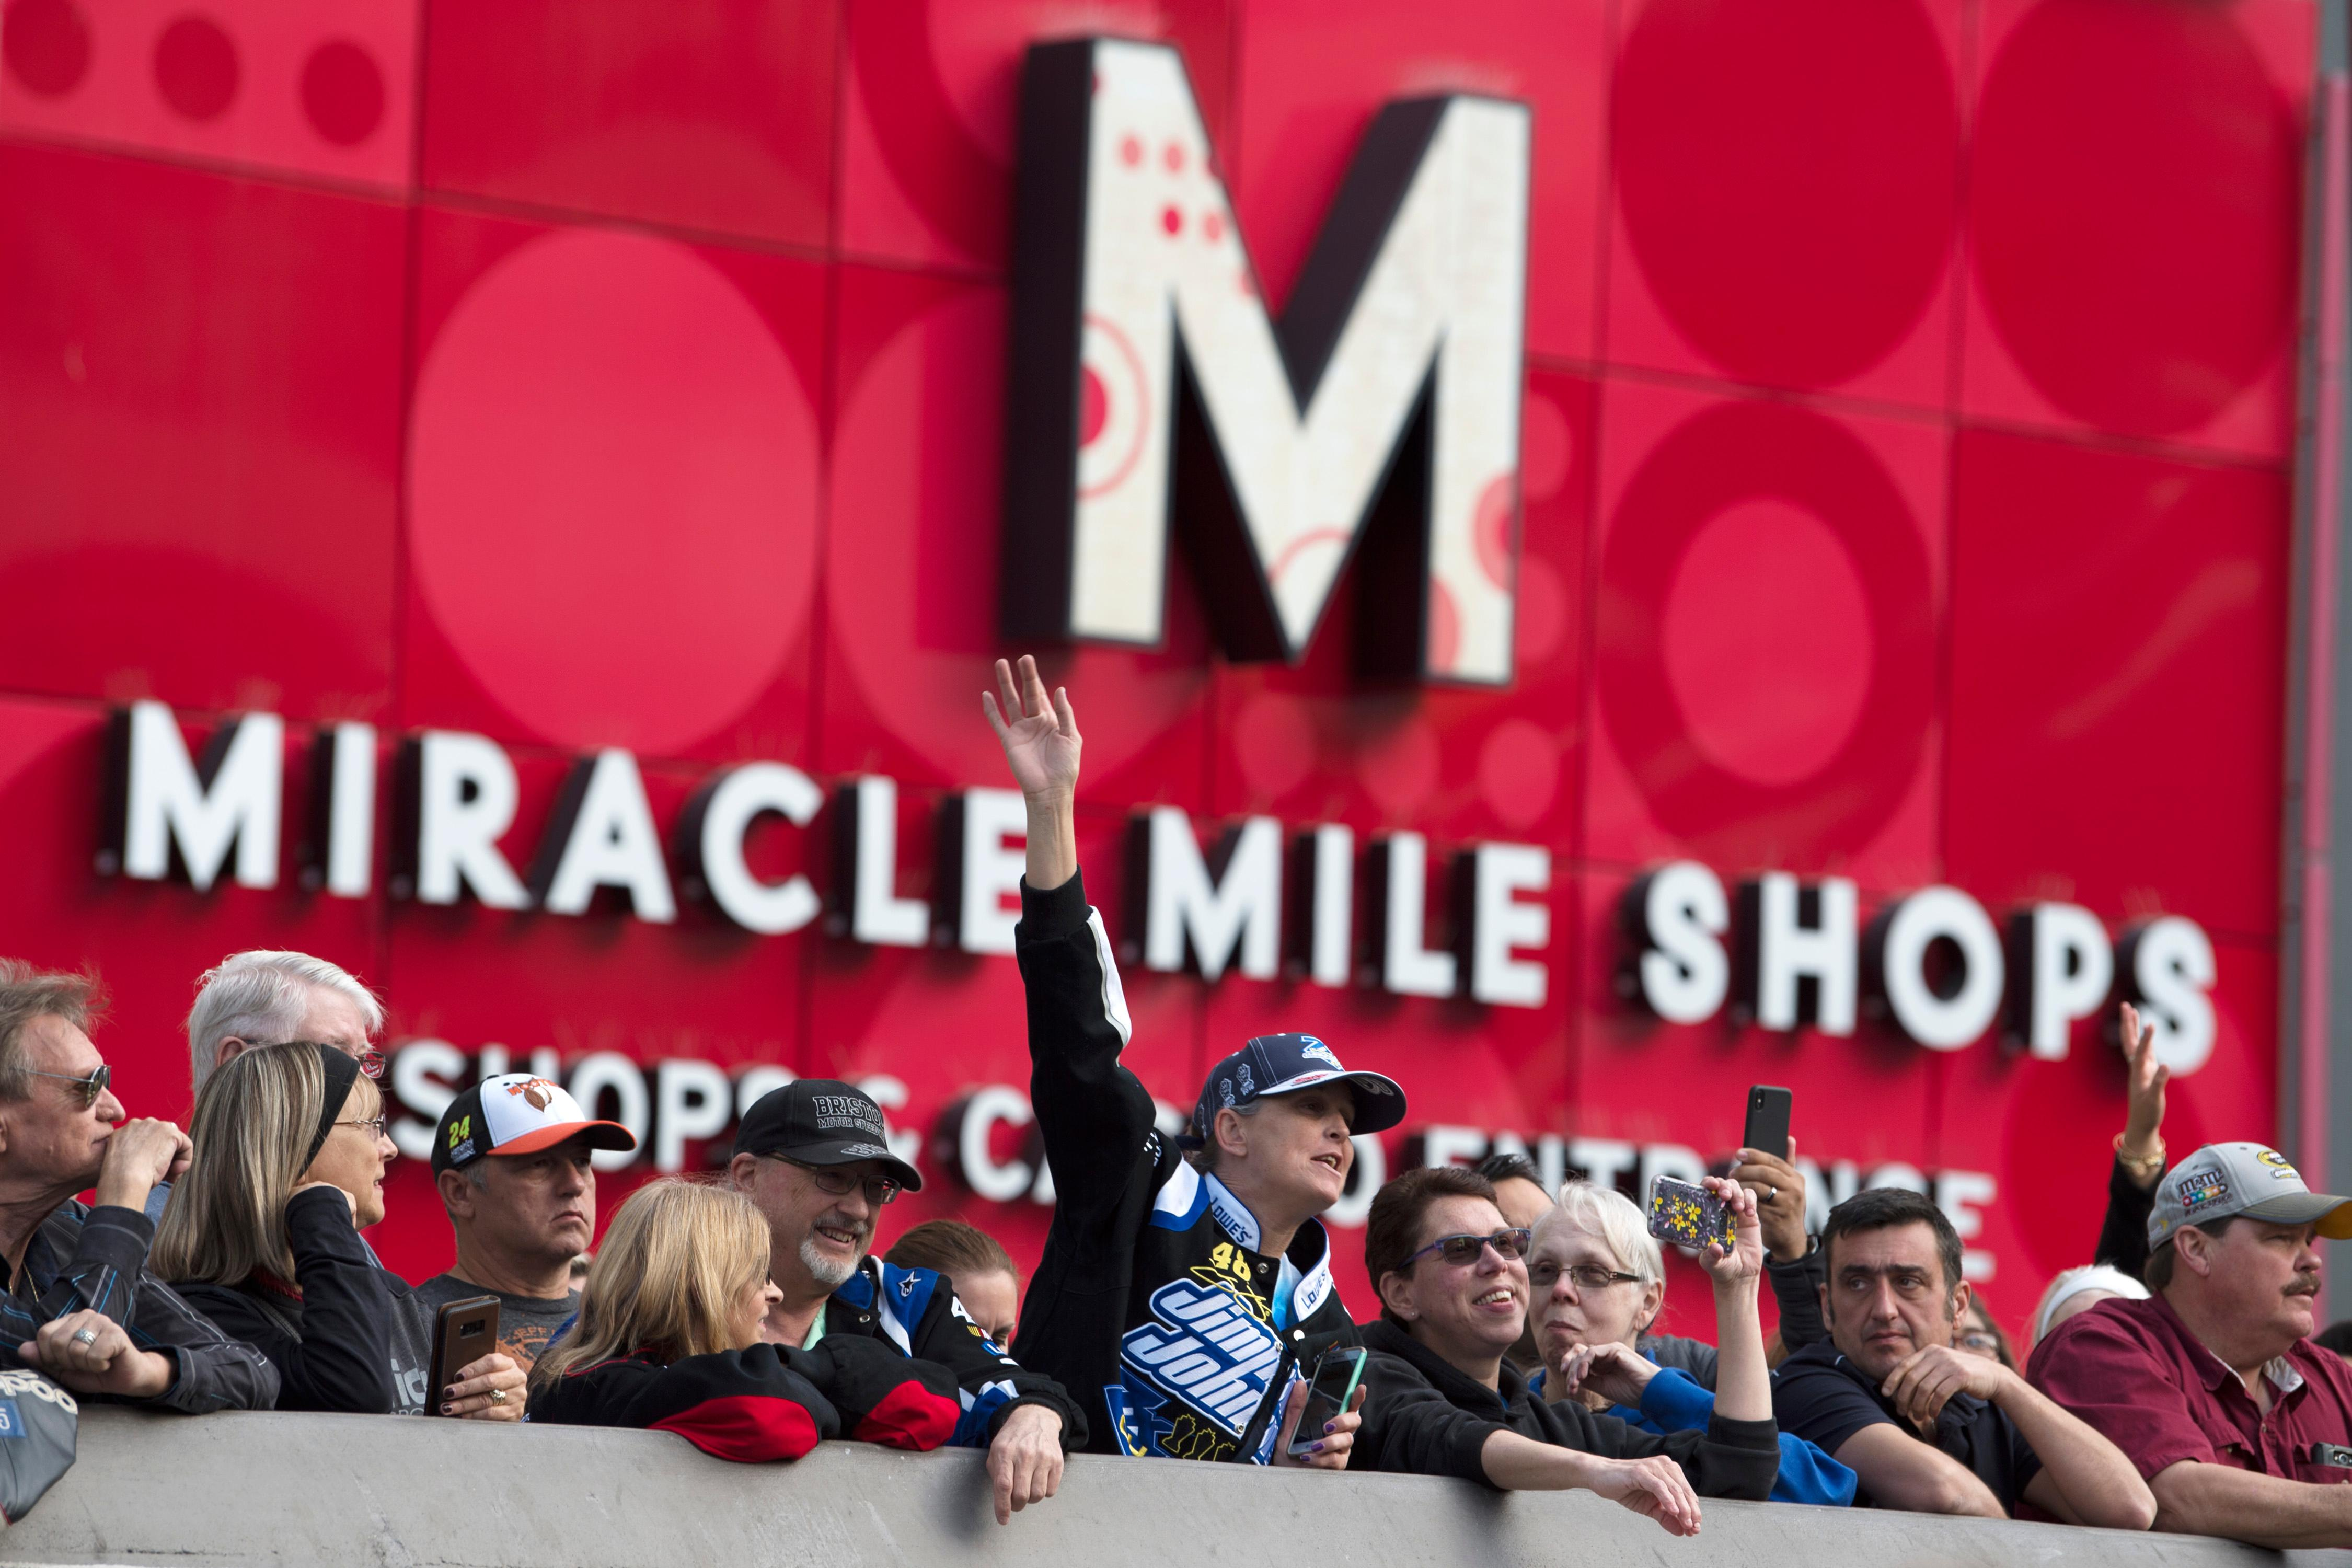 Fans line the sidewalk outside Planet Hollywood during the NASCAR Victory Lap on the Las Vegas Strip being held as part of Champions Week Wednesday, November 29, 2017. CREDIT: Sam Morris/Las Vegas News Bureau